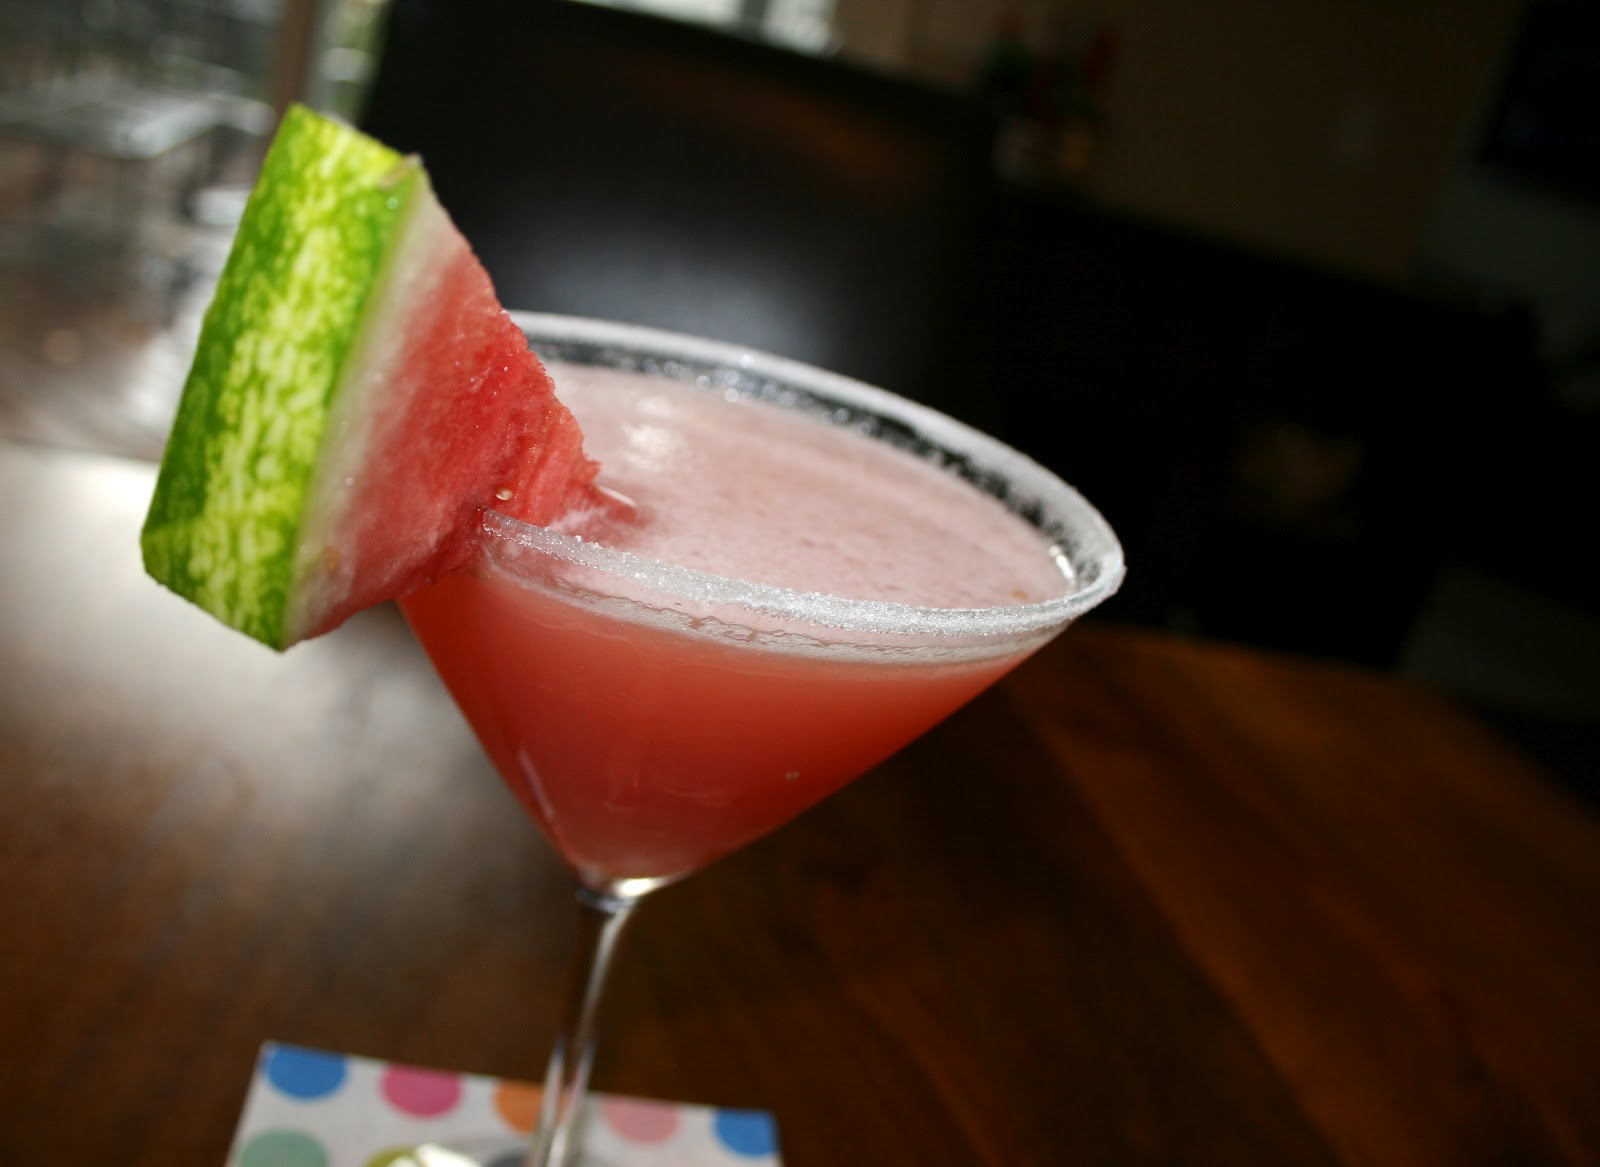 Wren's Rambles: Sour Watermelon Martini